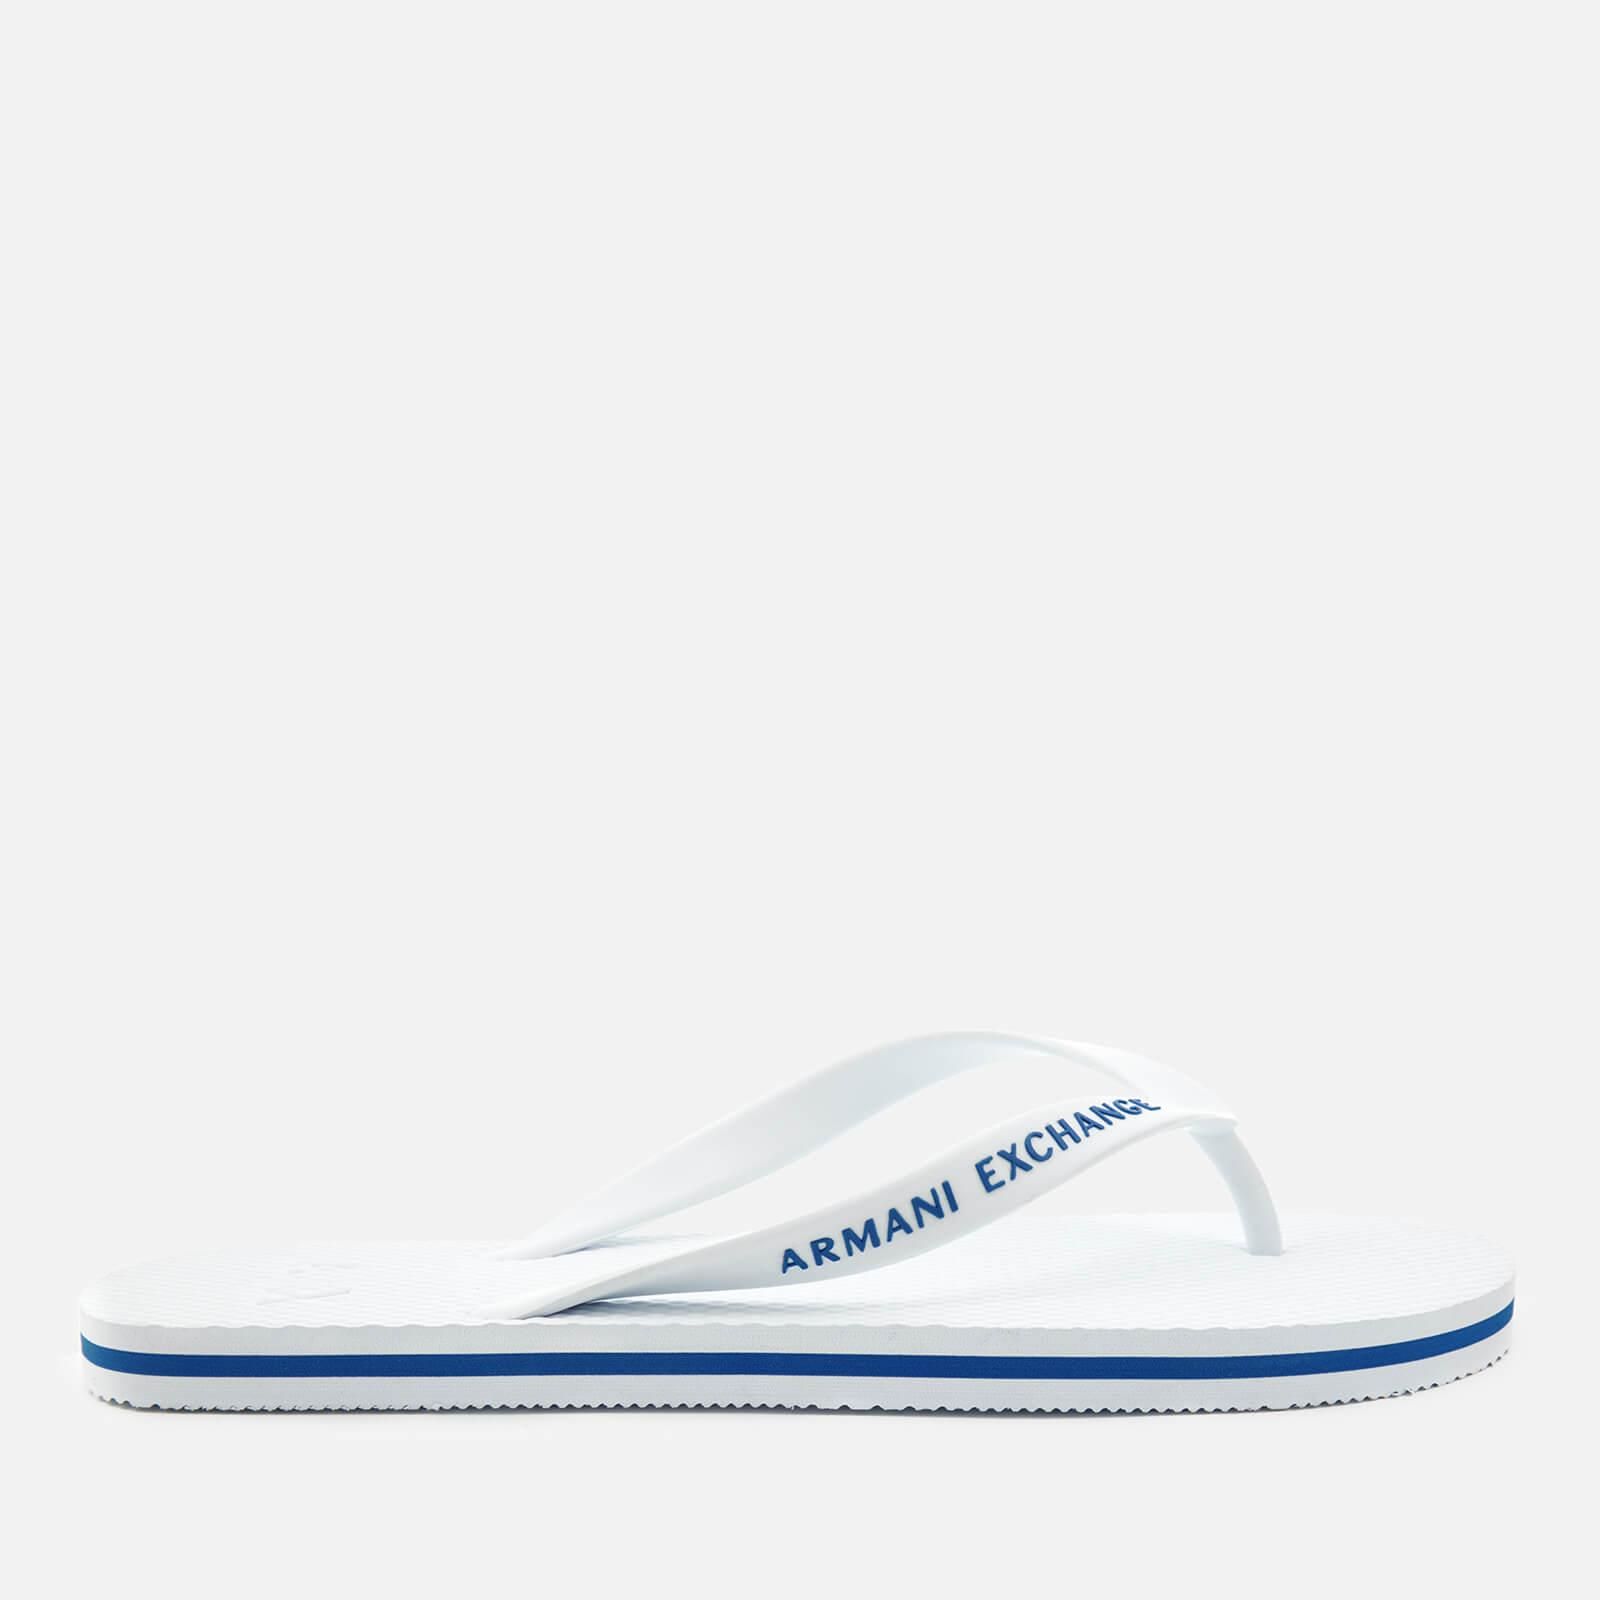 85d1916278e2 Armani Exchange - White Solid Flip Flops for Men - Lyst. View fullscreen